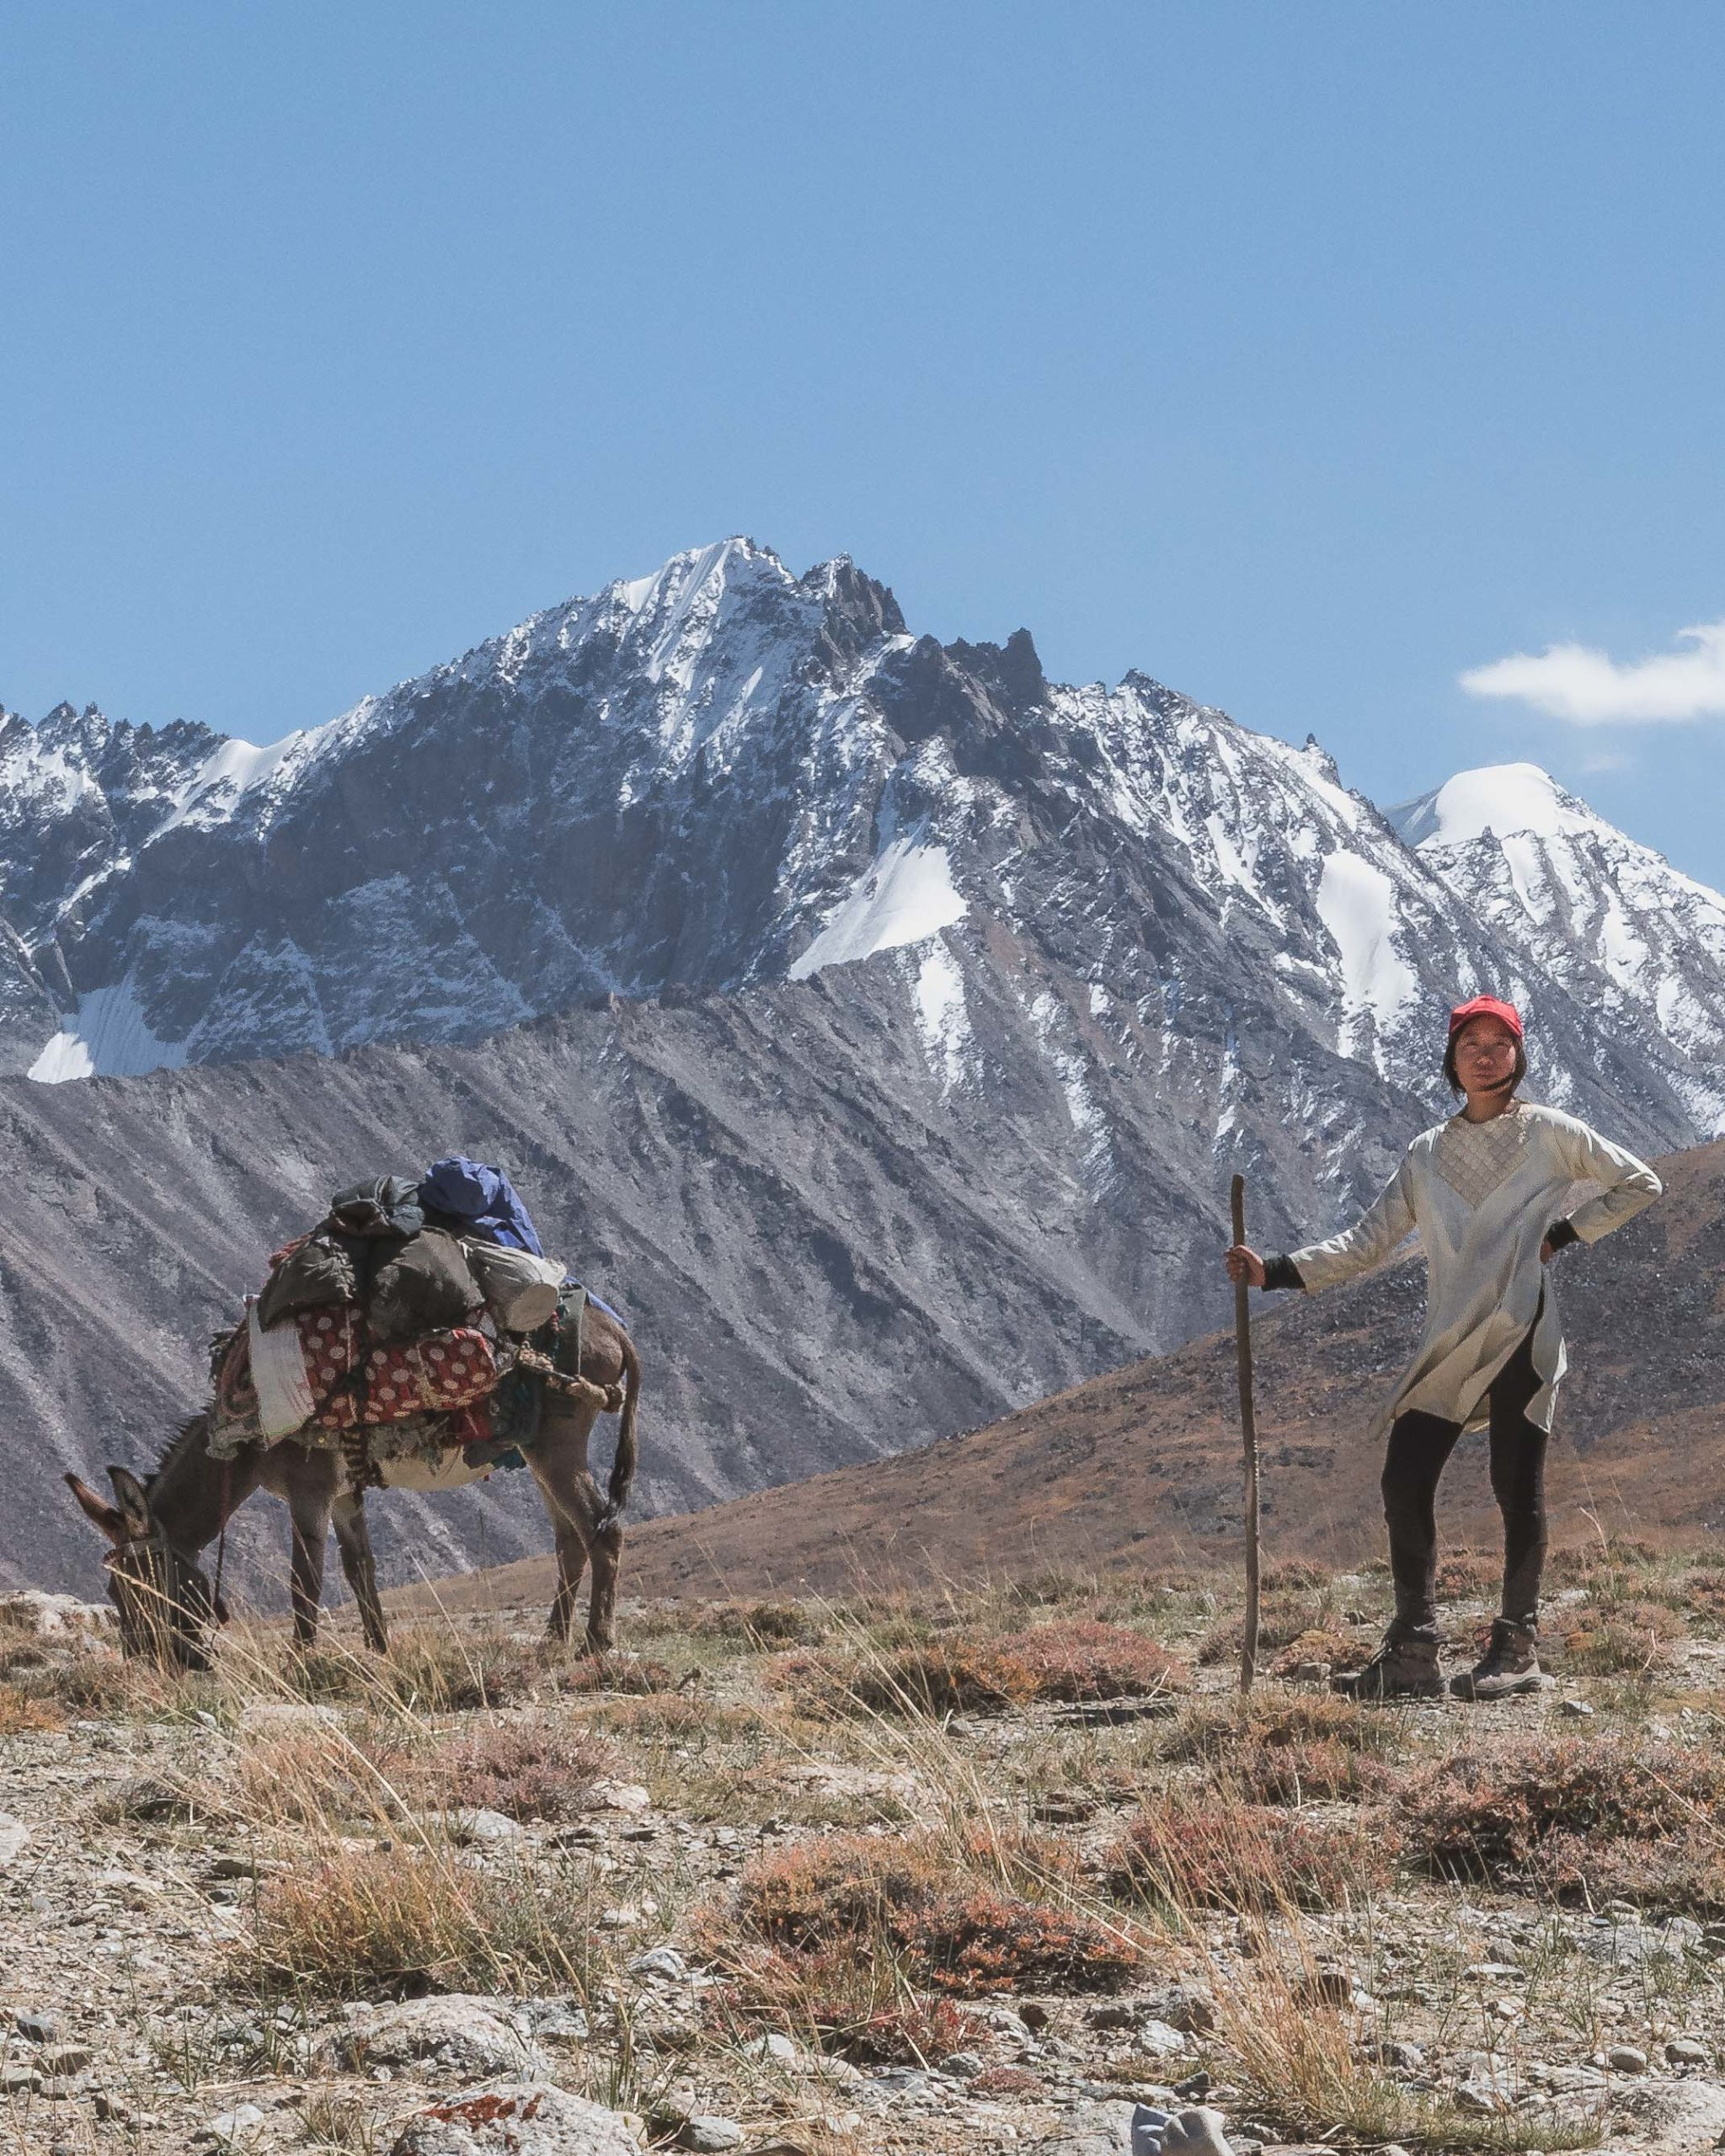 A donkey with stuff strapped to his back eats grass while Marsha and her red cap stand to the side. There are mountains of Afghanistan behind them.